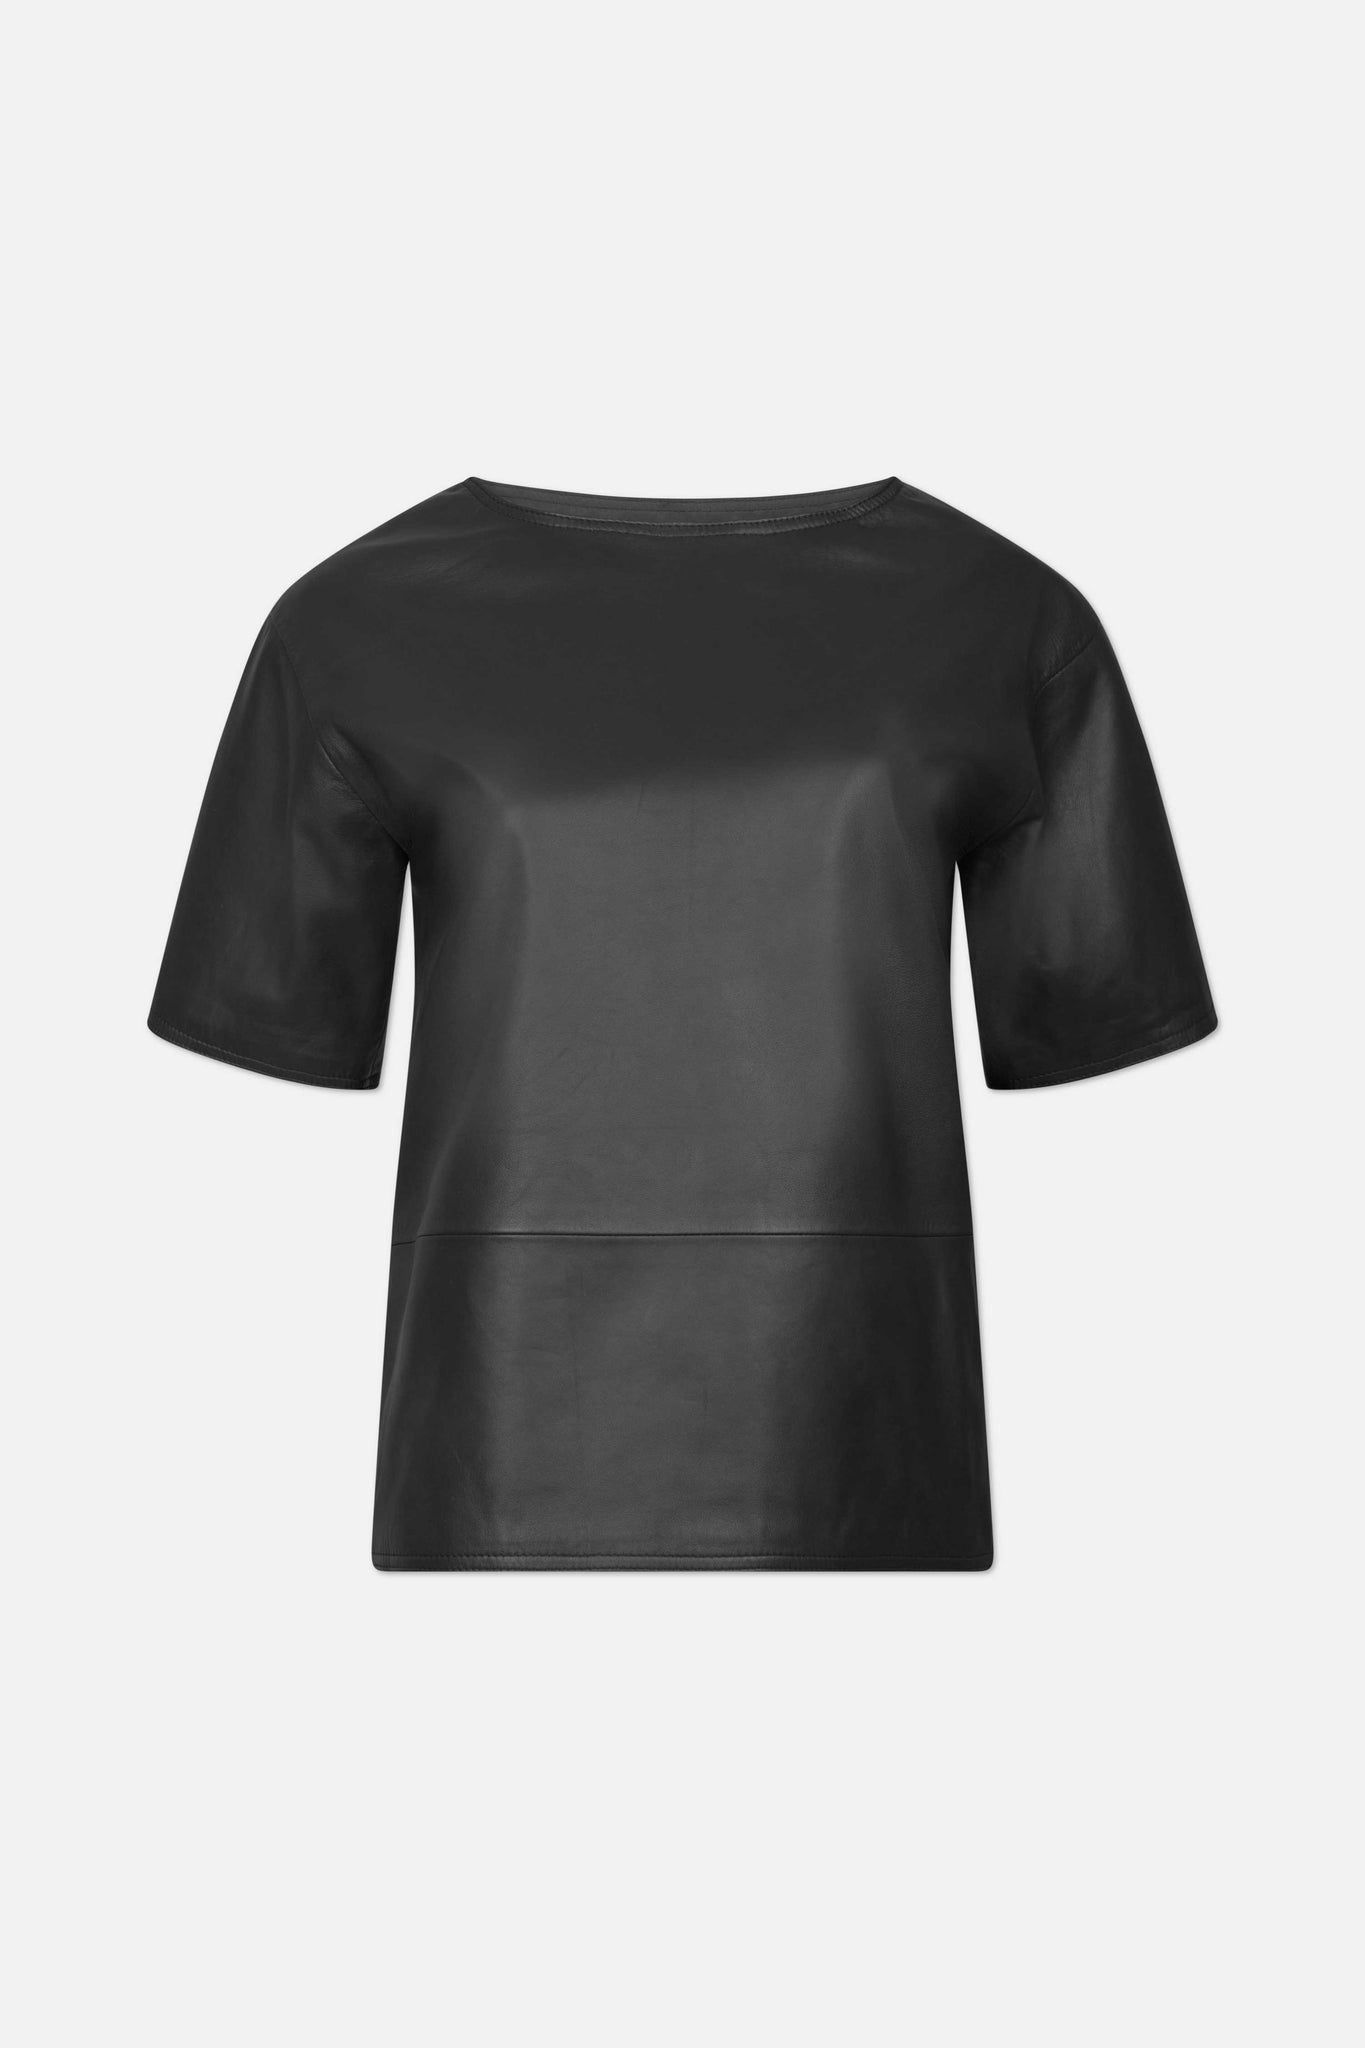 KALPENI LEATHER SHIRT BY LOULOU STUDIO IN BLACK